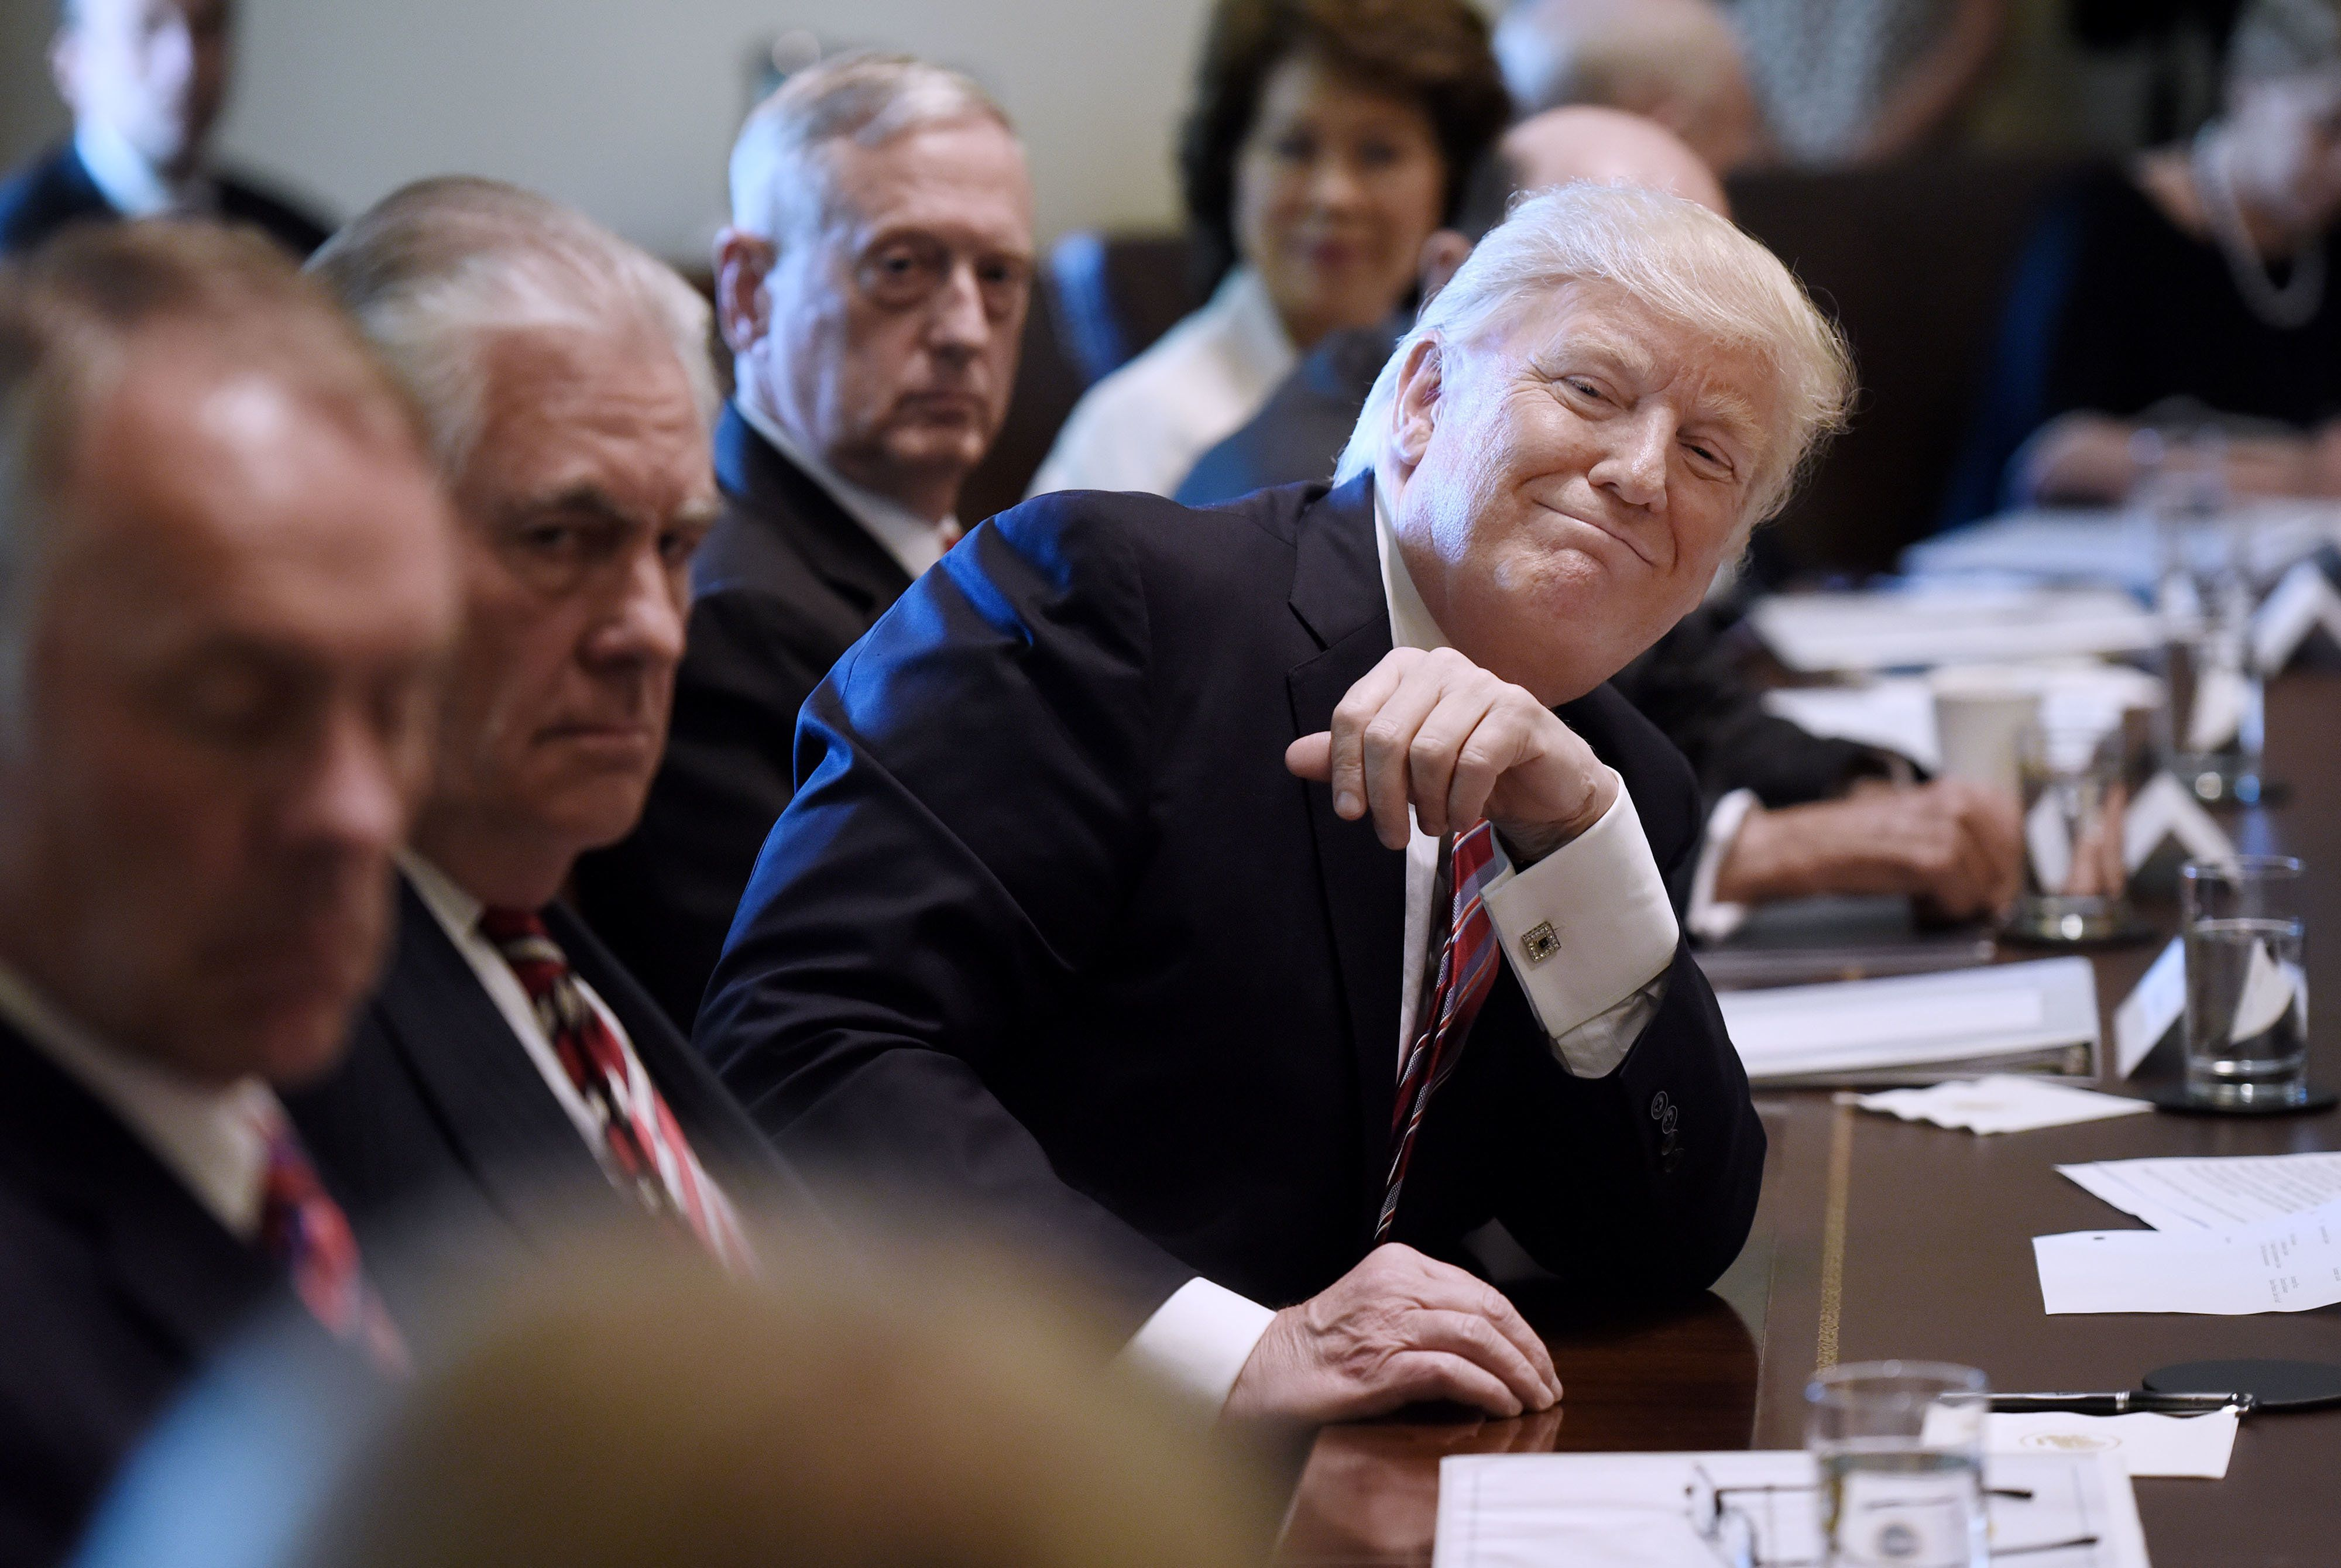 U.S. President Donald Trump smiles during a meeting with Cabinet members at the White House in Washington, D.C., U.S., on Monday, June 12, 2017. U.S. Attorney GeneralJeff Sessionswill testify publicly Tuesday before the Senate Intelligence Committee, a high-stakes event that comes days after fired FBI DirectorJames Comey'sdramatic appearance. Photographer: Olivier Douliery/Pool via Bloomberg